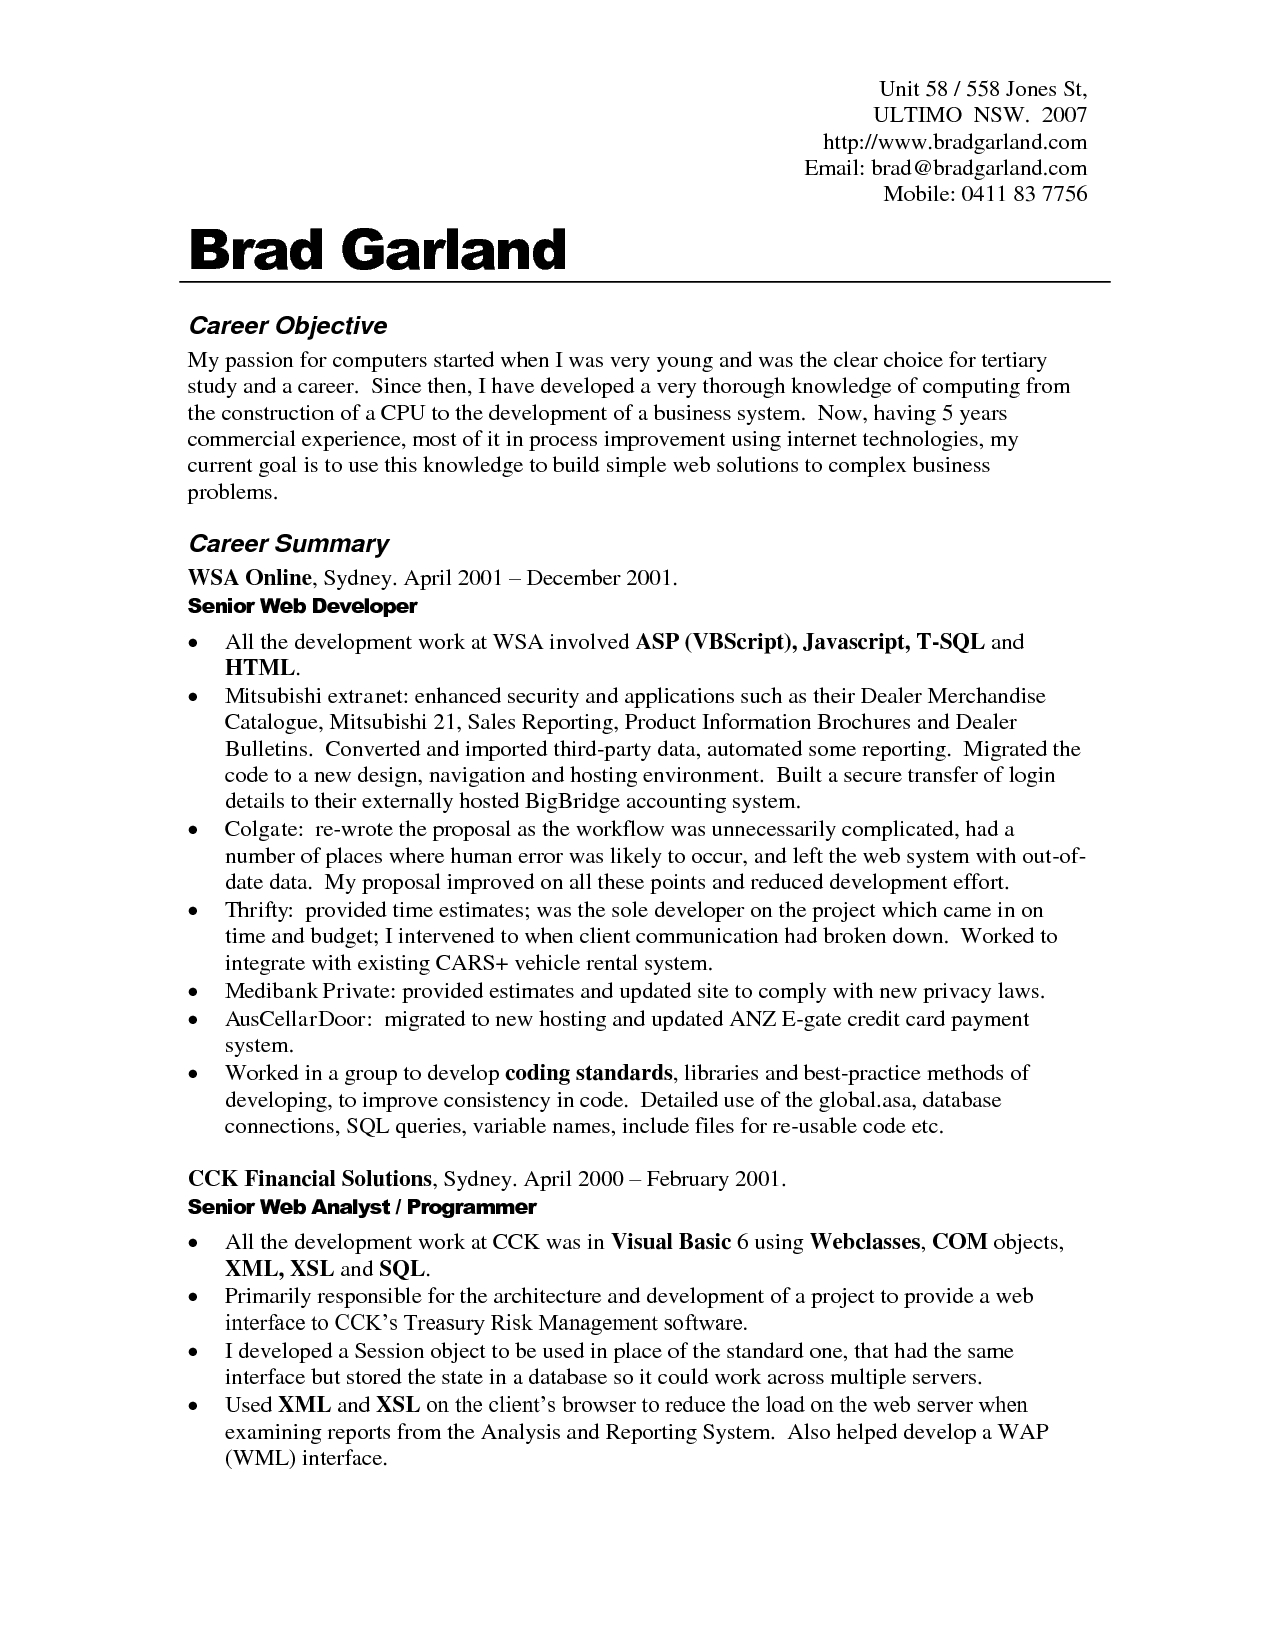 how to write a great resume objective resume livecareer shopgrat how to write a great resume - Writing An Objective For A Resume